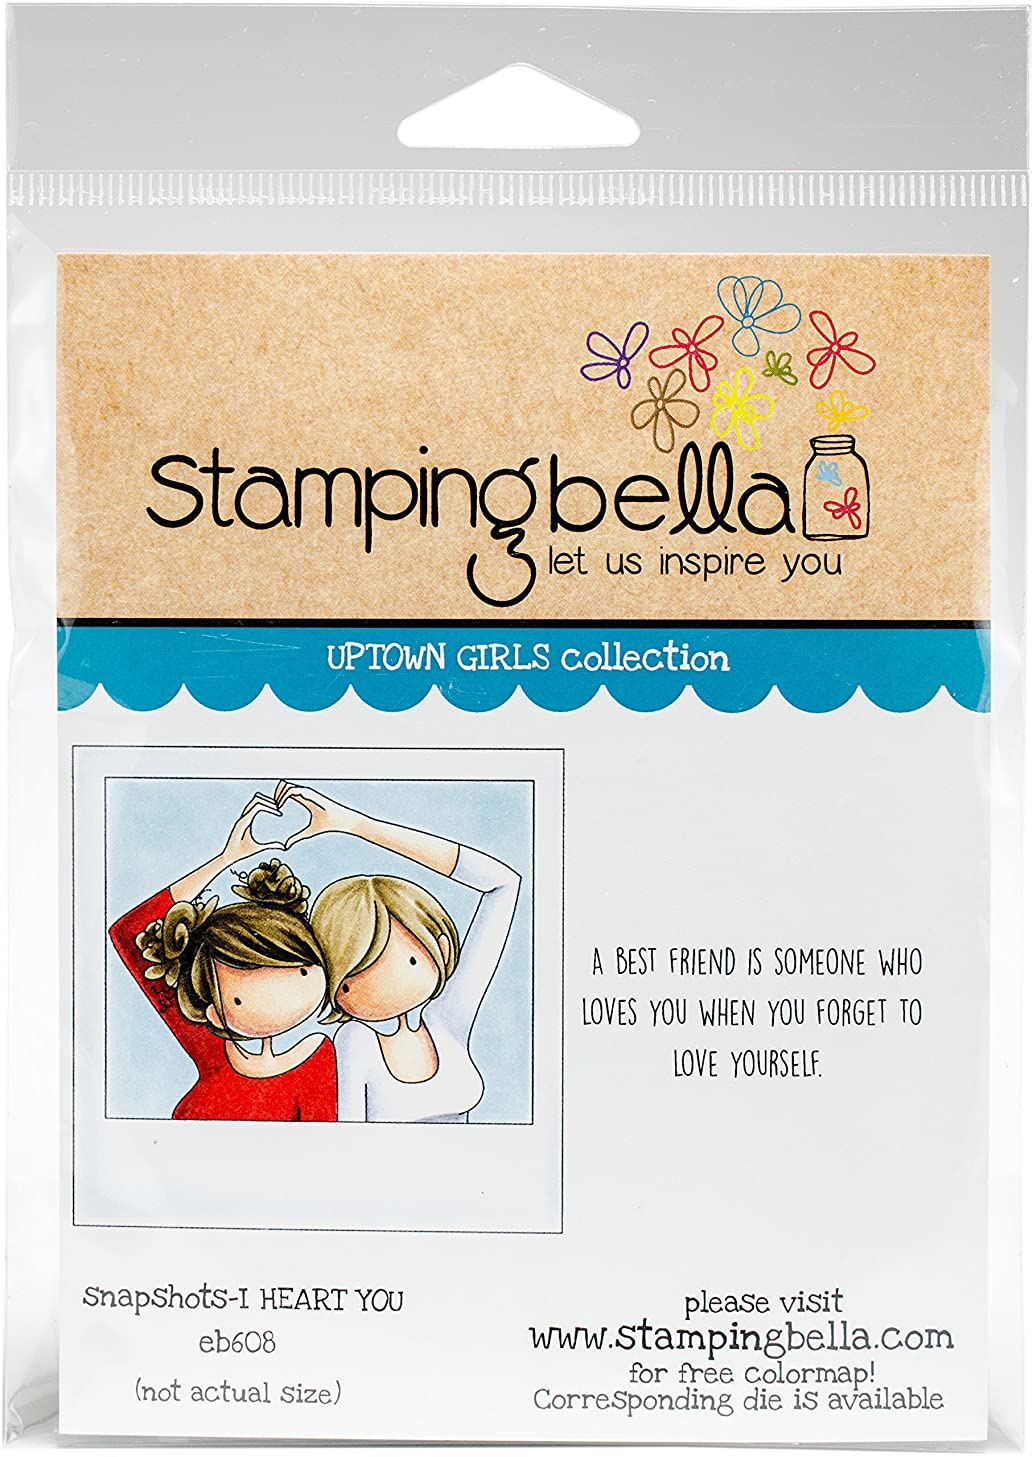 Stamping Bella Uptown Girl Snapshots-I Heart You Cling Stamps